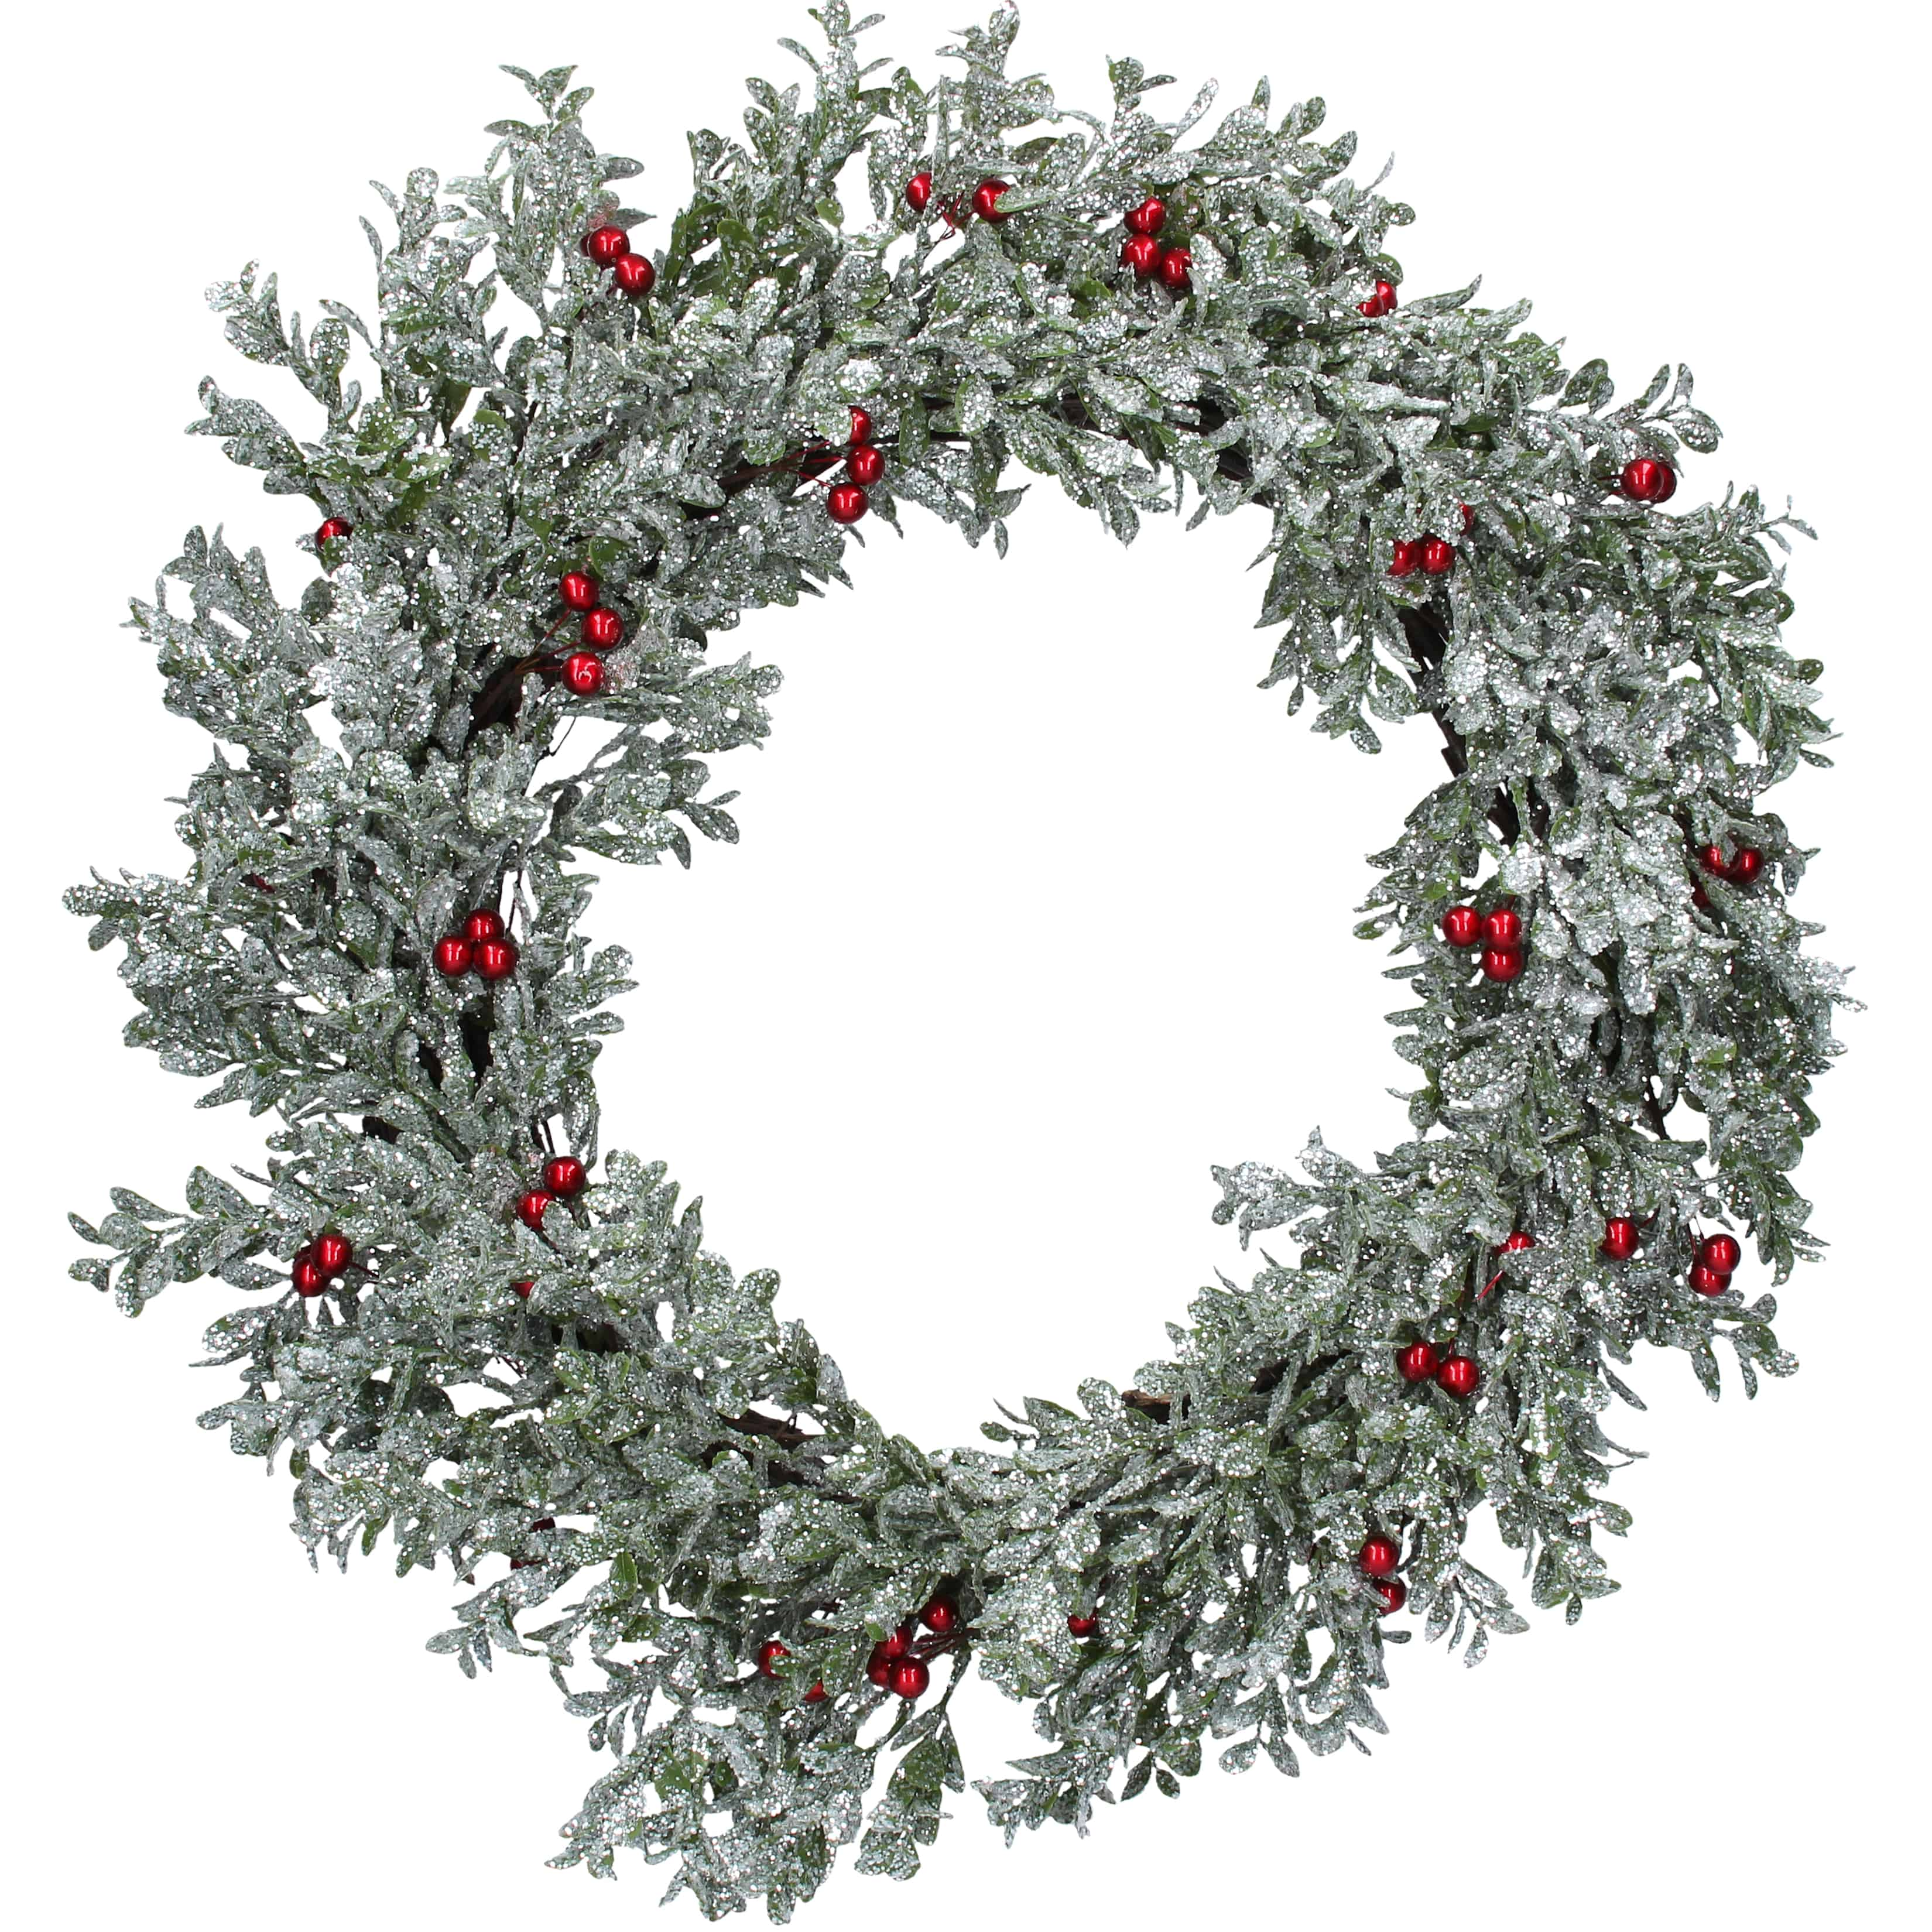 Image Christmas Wreath.24 61cm Silver Glitter Leaf Christmas Wreath With Red Berries